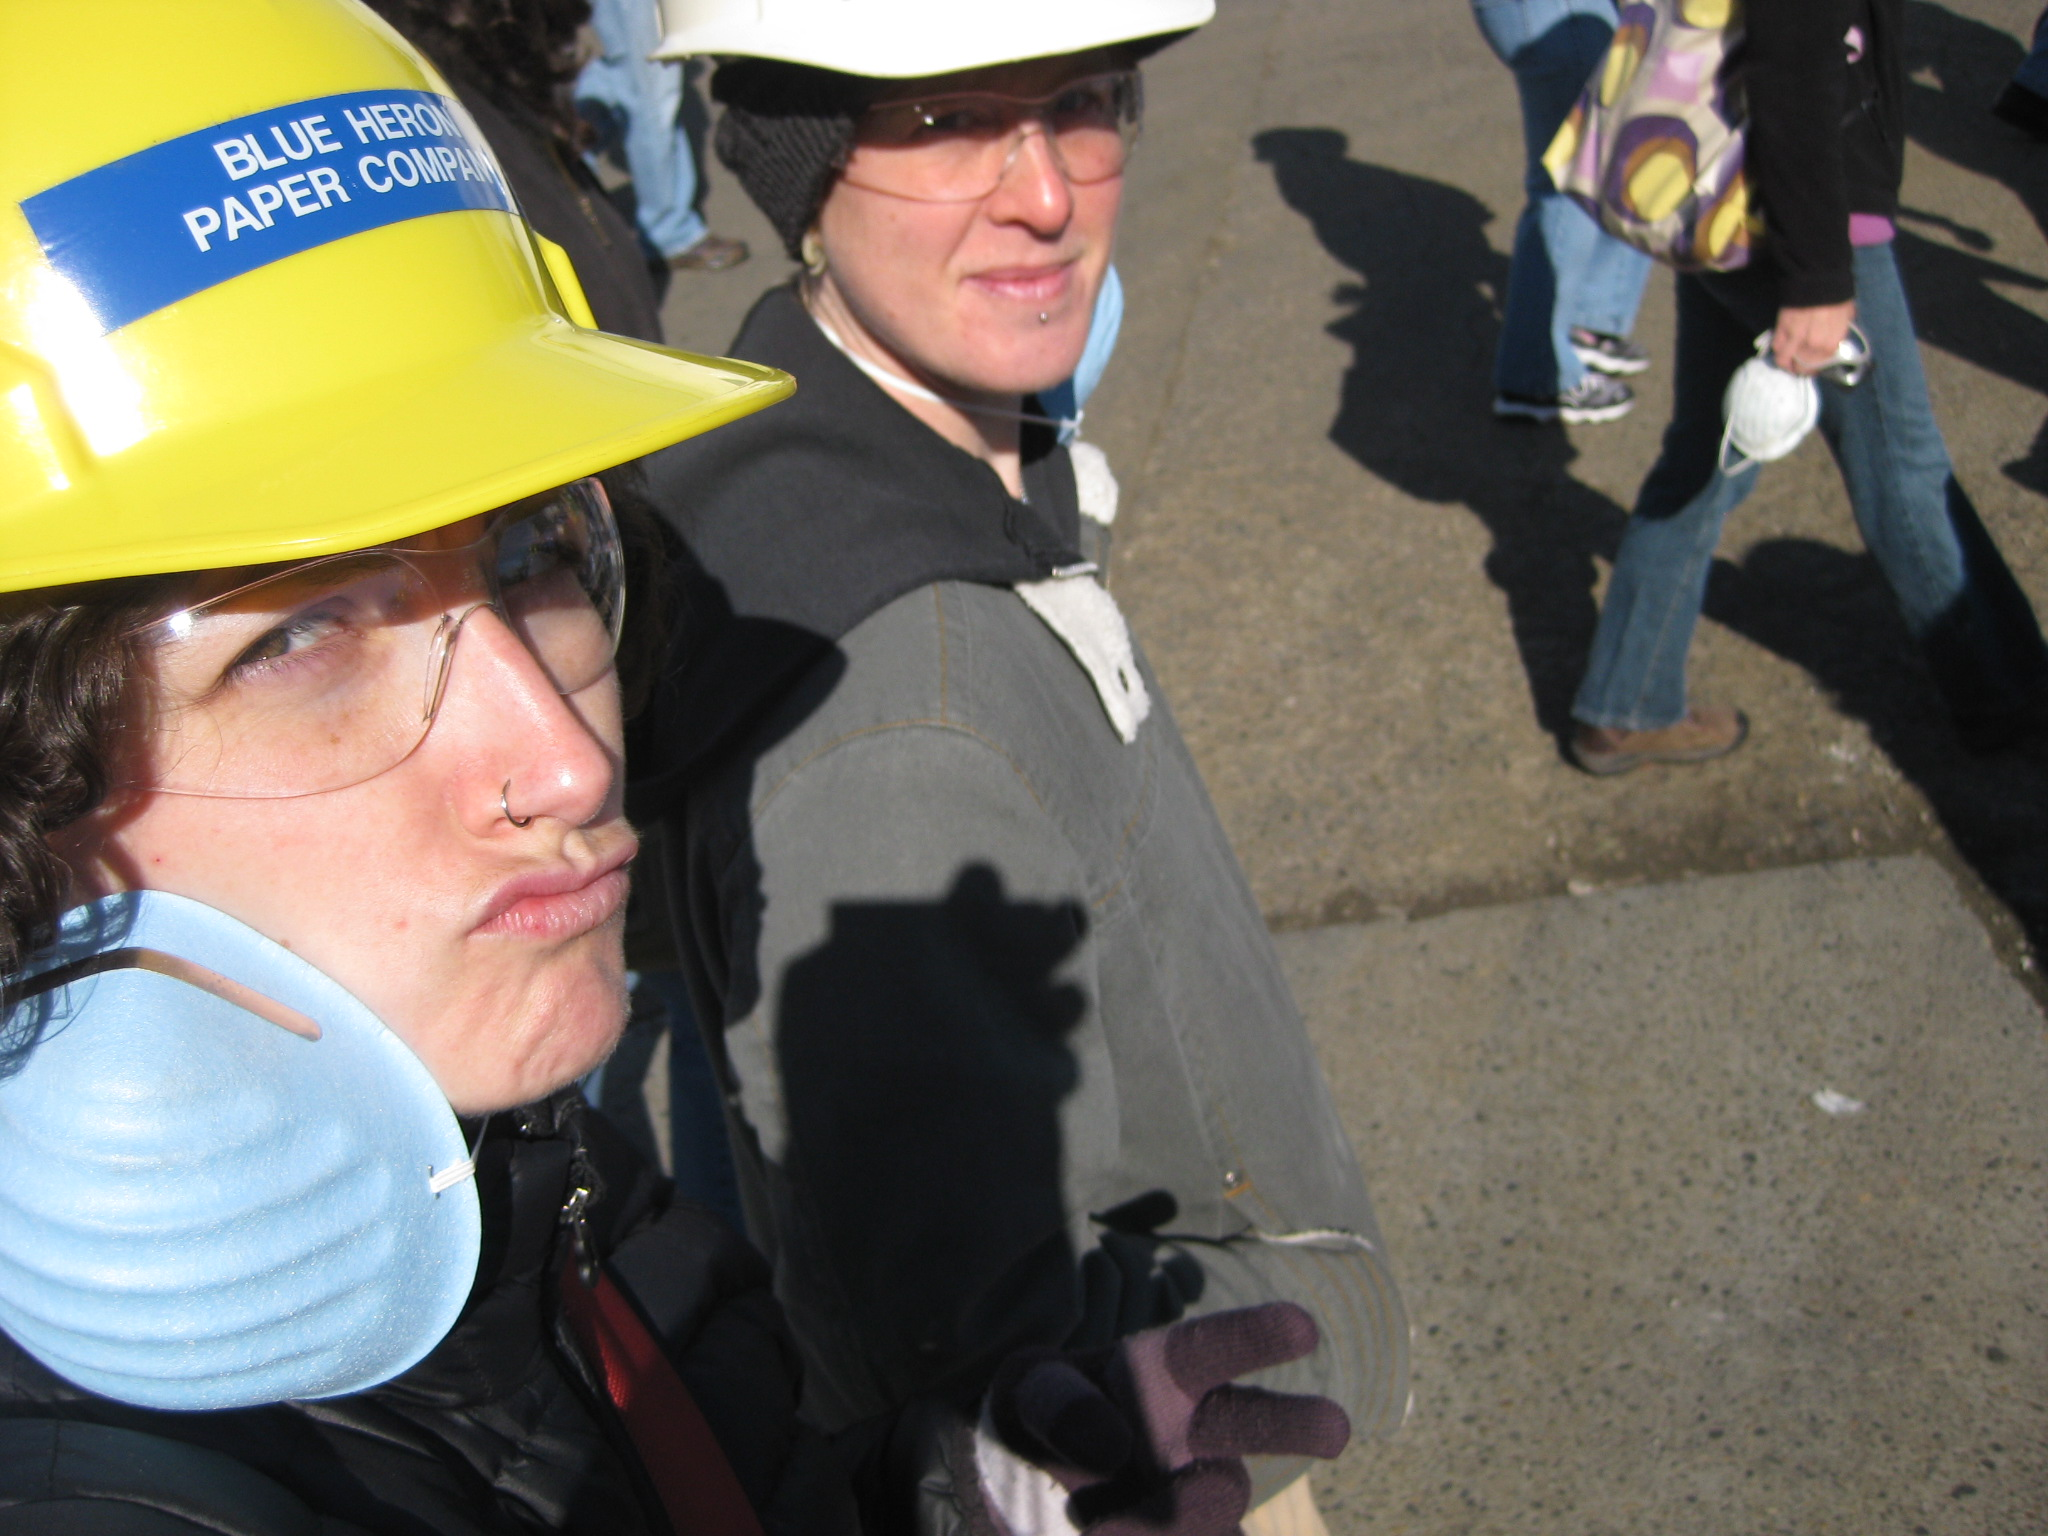 Elle likes to take fun pictures as well. This one was way back during the class tour of the Blue Heron paper mill which is now closed.